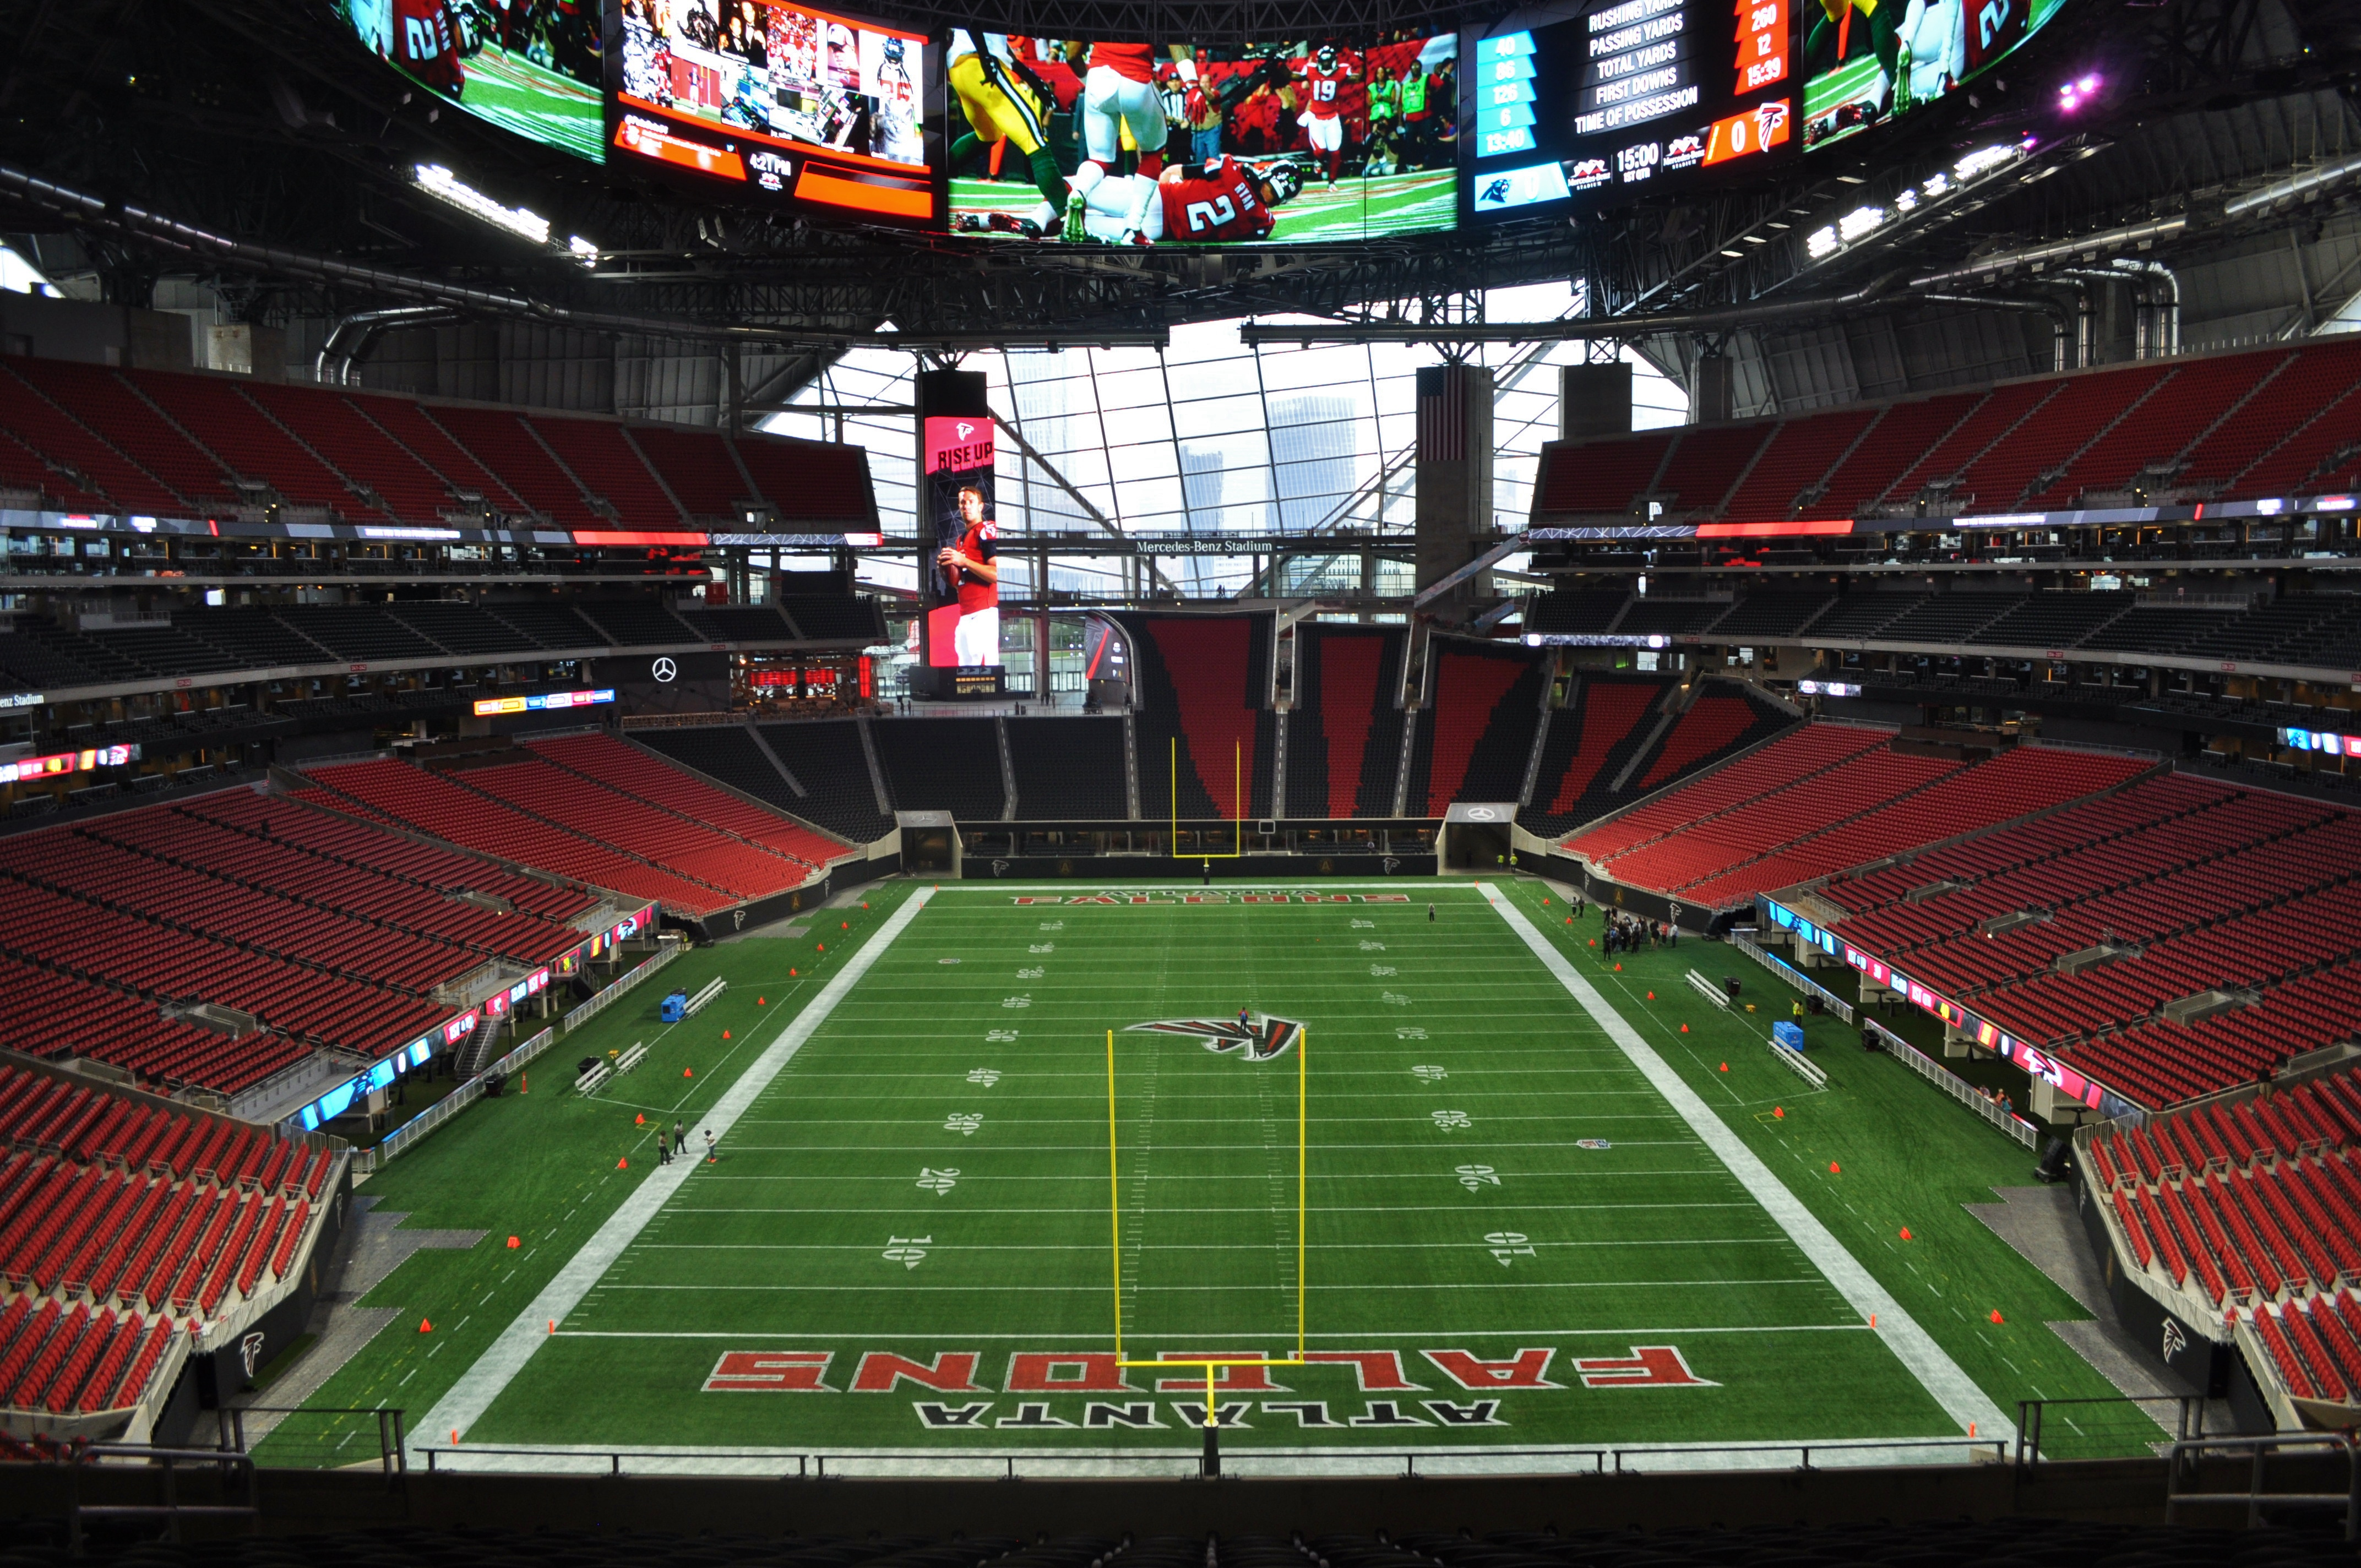 A picture from the west endzone at the middle level of the stadium, looking down the field and out the massive window to downtown.